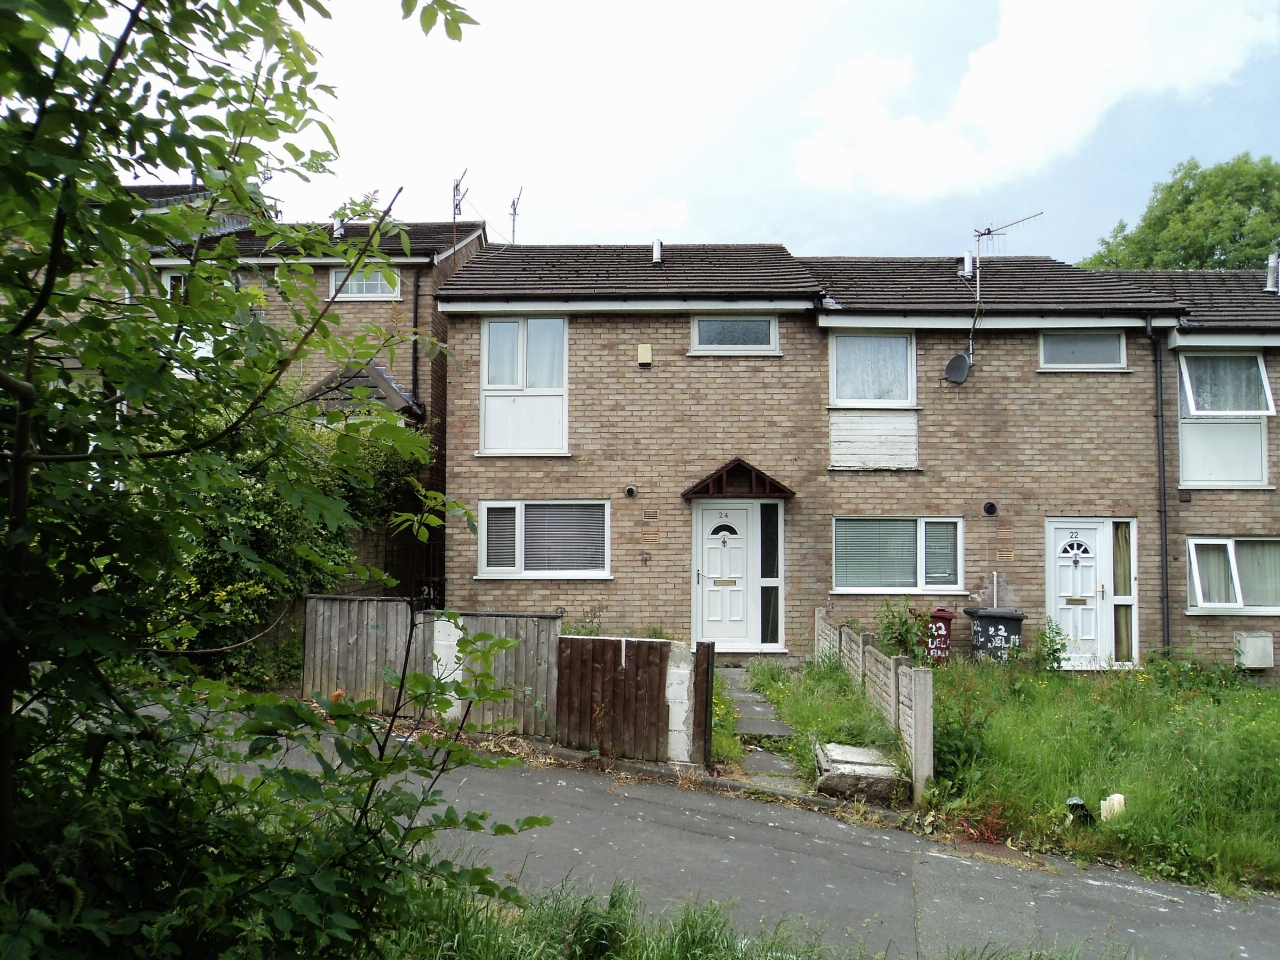 3 Bedroom End Terraced House For Sale - Image 1